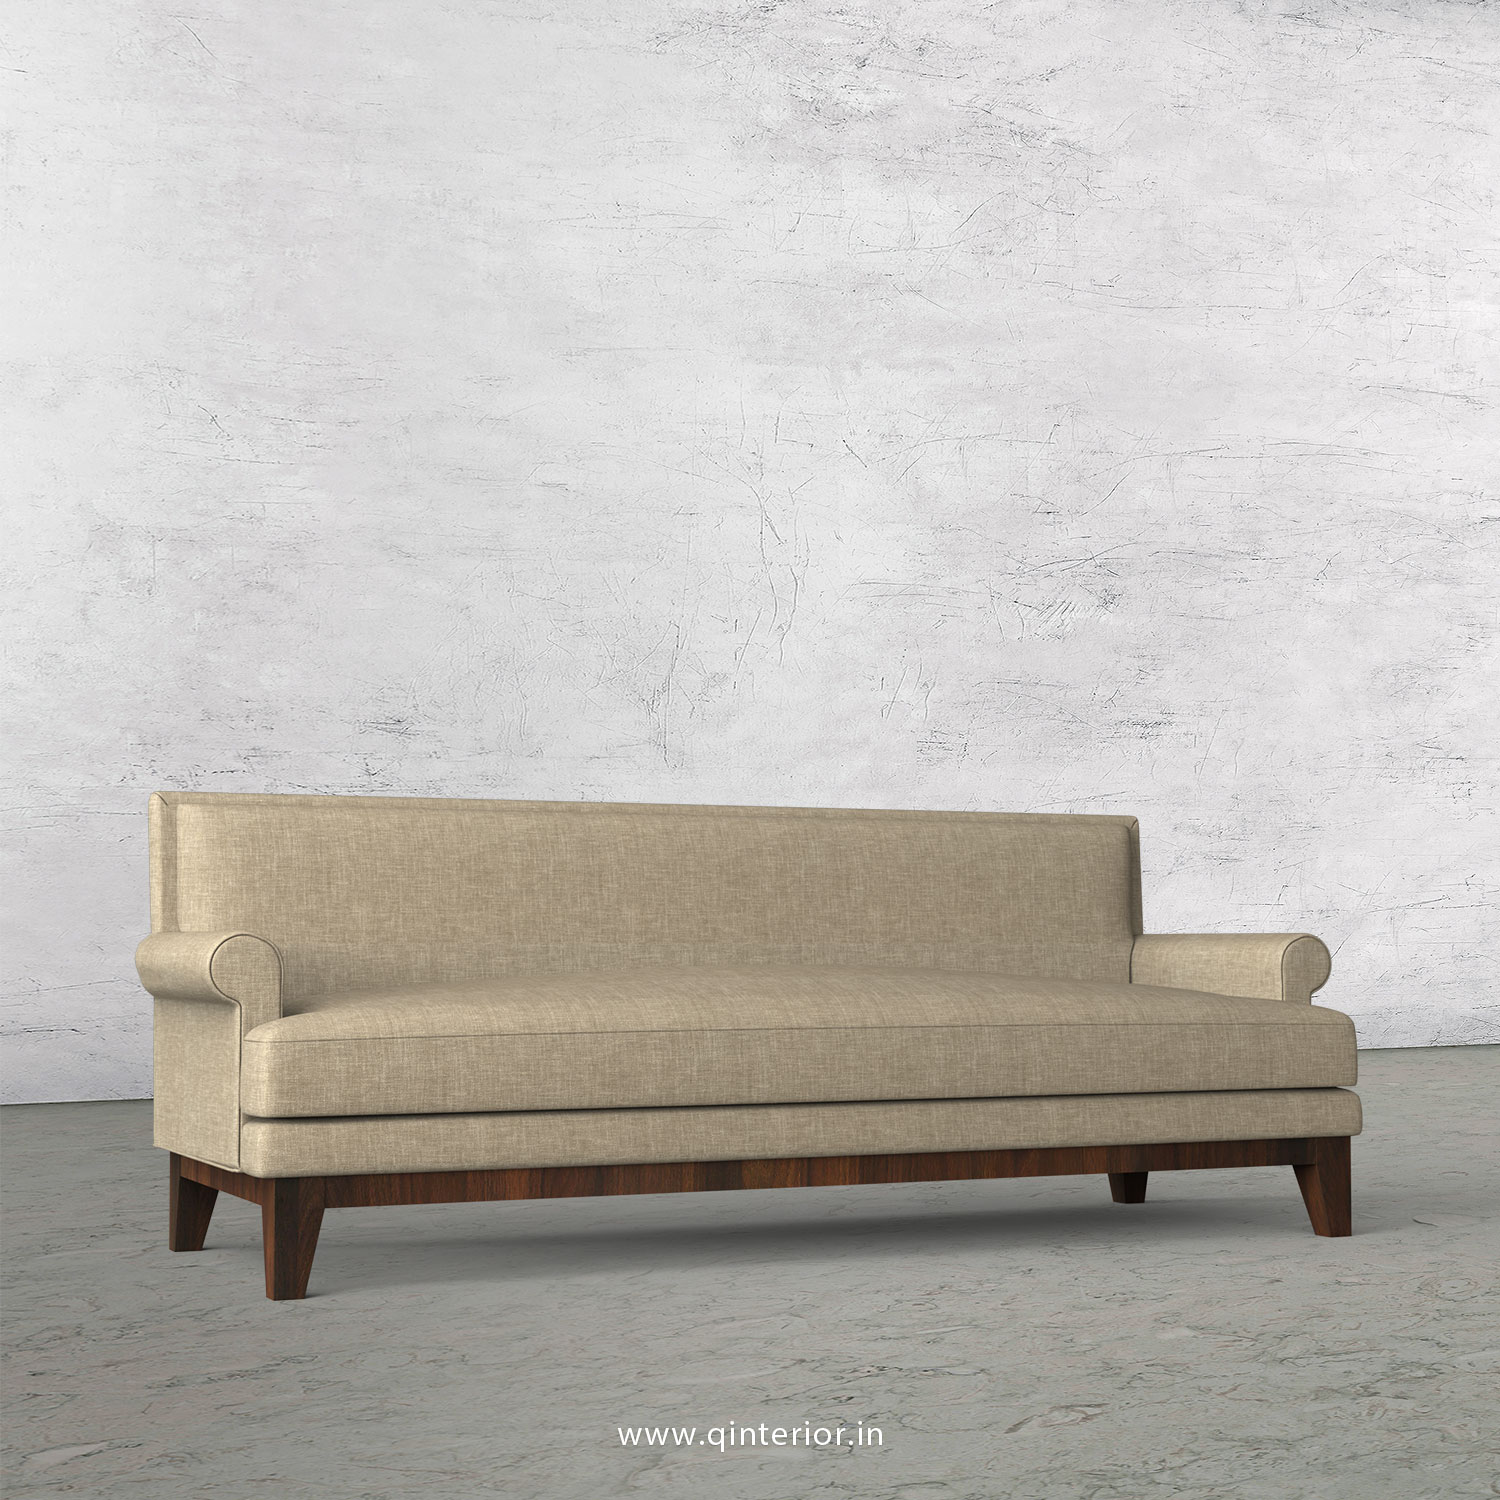 Aviana 3 Seater Sofa in Cotton Plain - SFA001 CP01